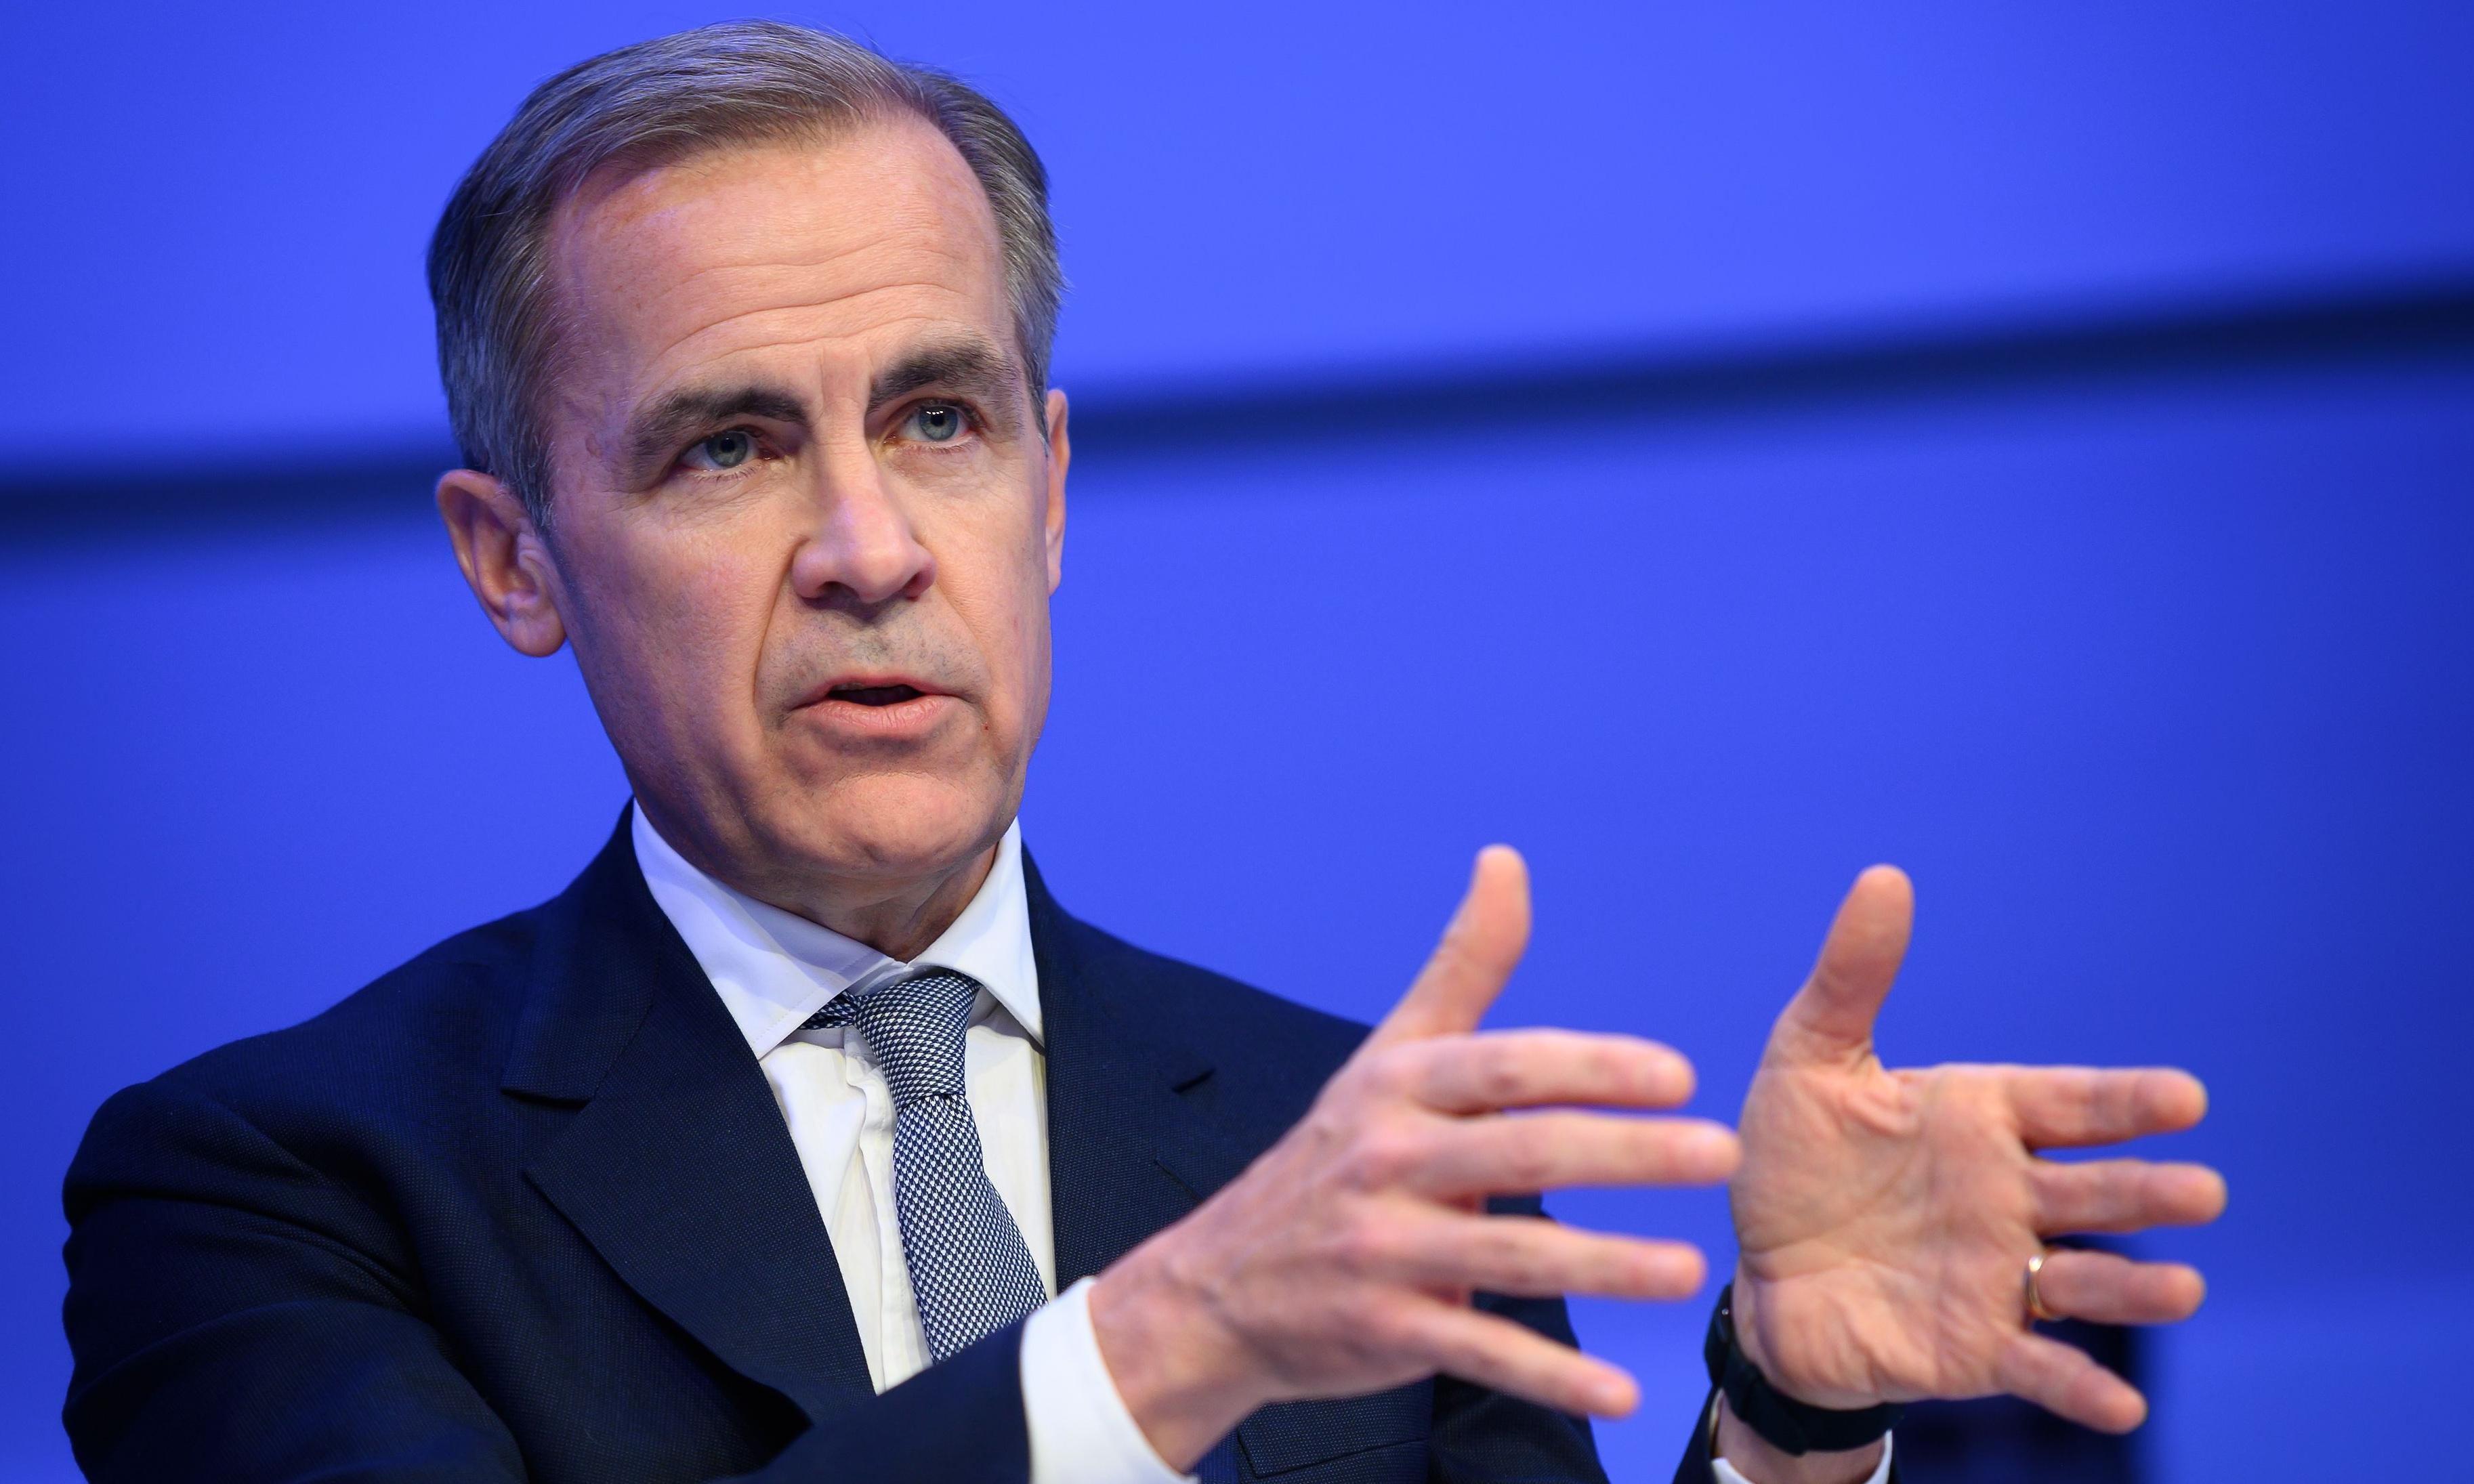 Carney sides with Greta Thunberg against Trump over climate